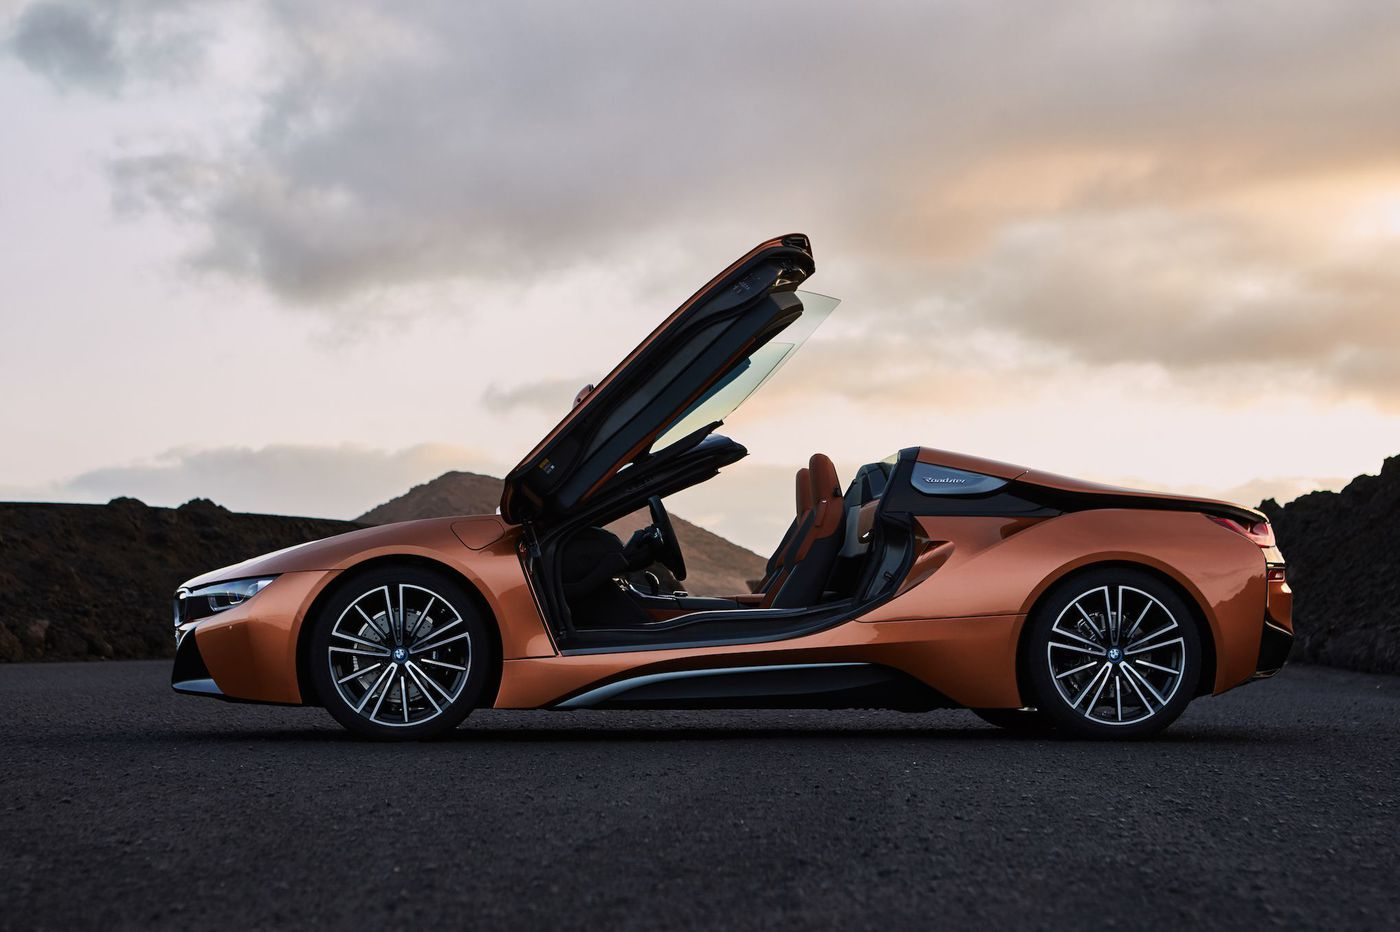 BMW i8: Engine and motor combine to double the fun